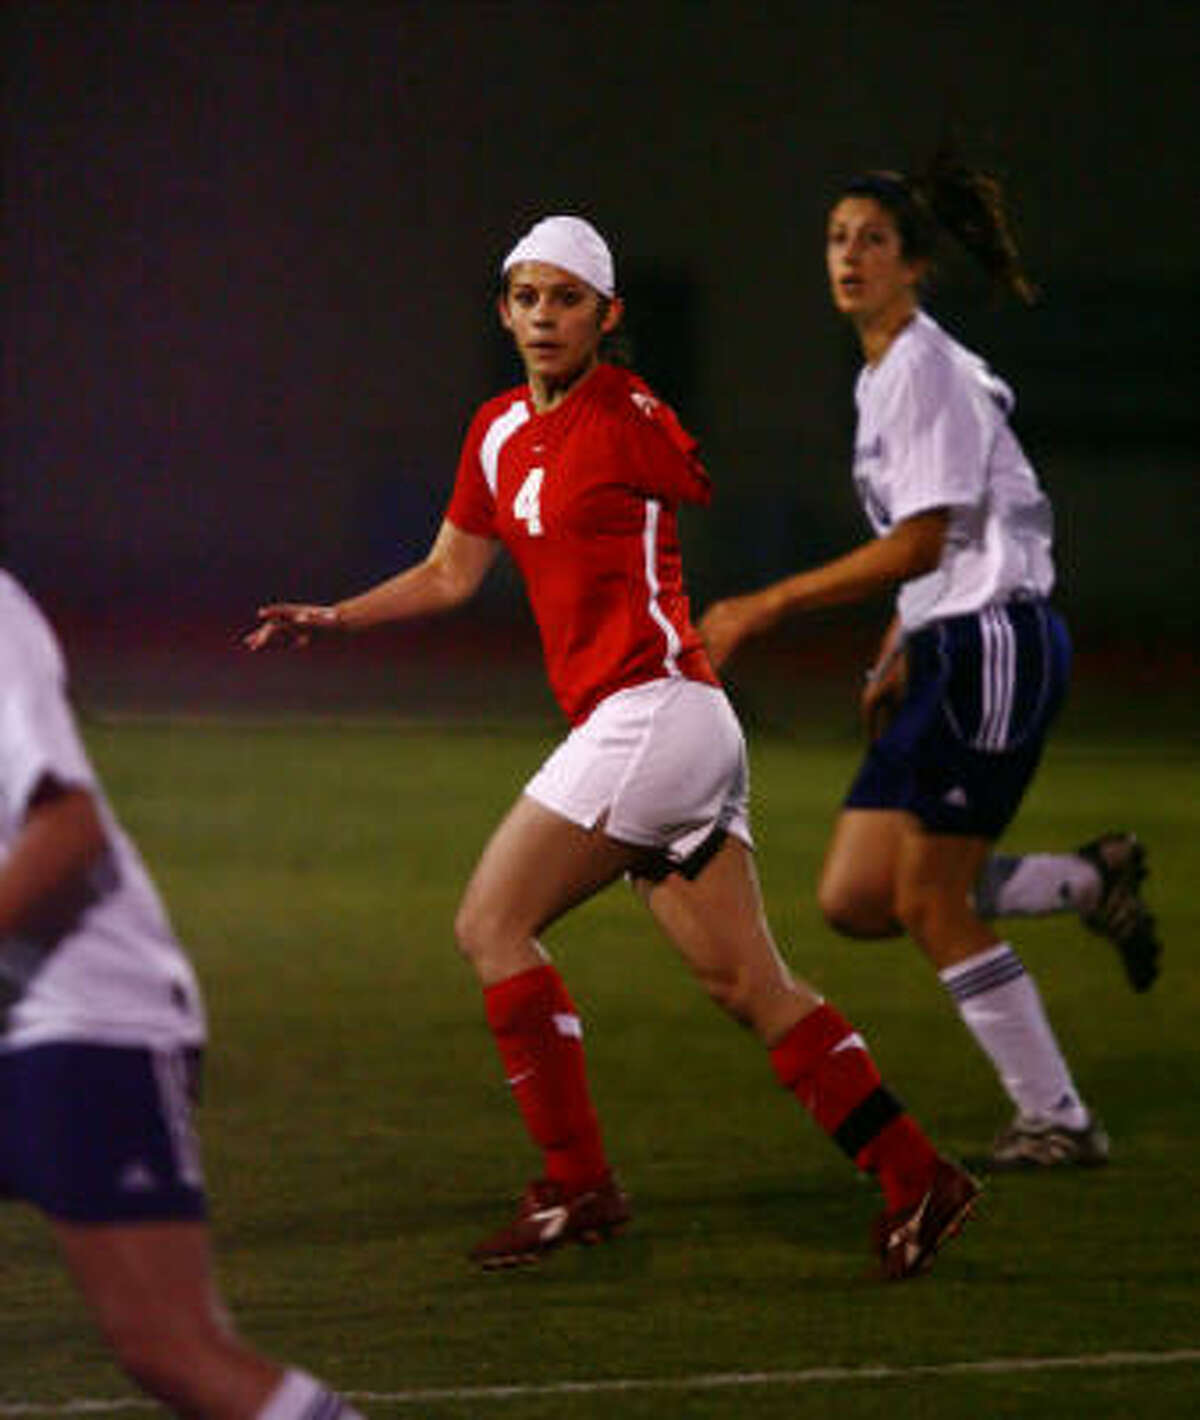 Devin Martindale, of Beaumont, lost her arm in the March 2006 bus accident.